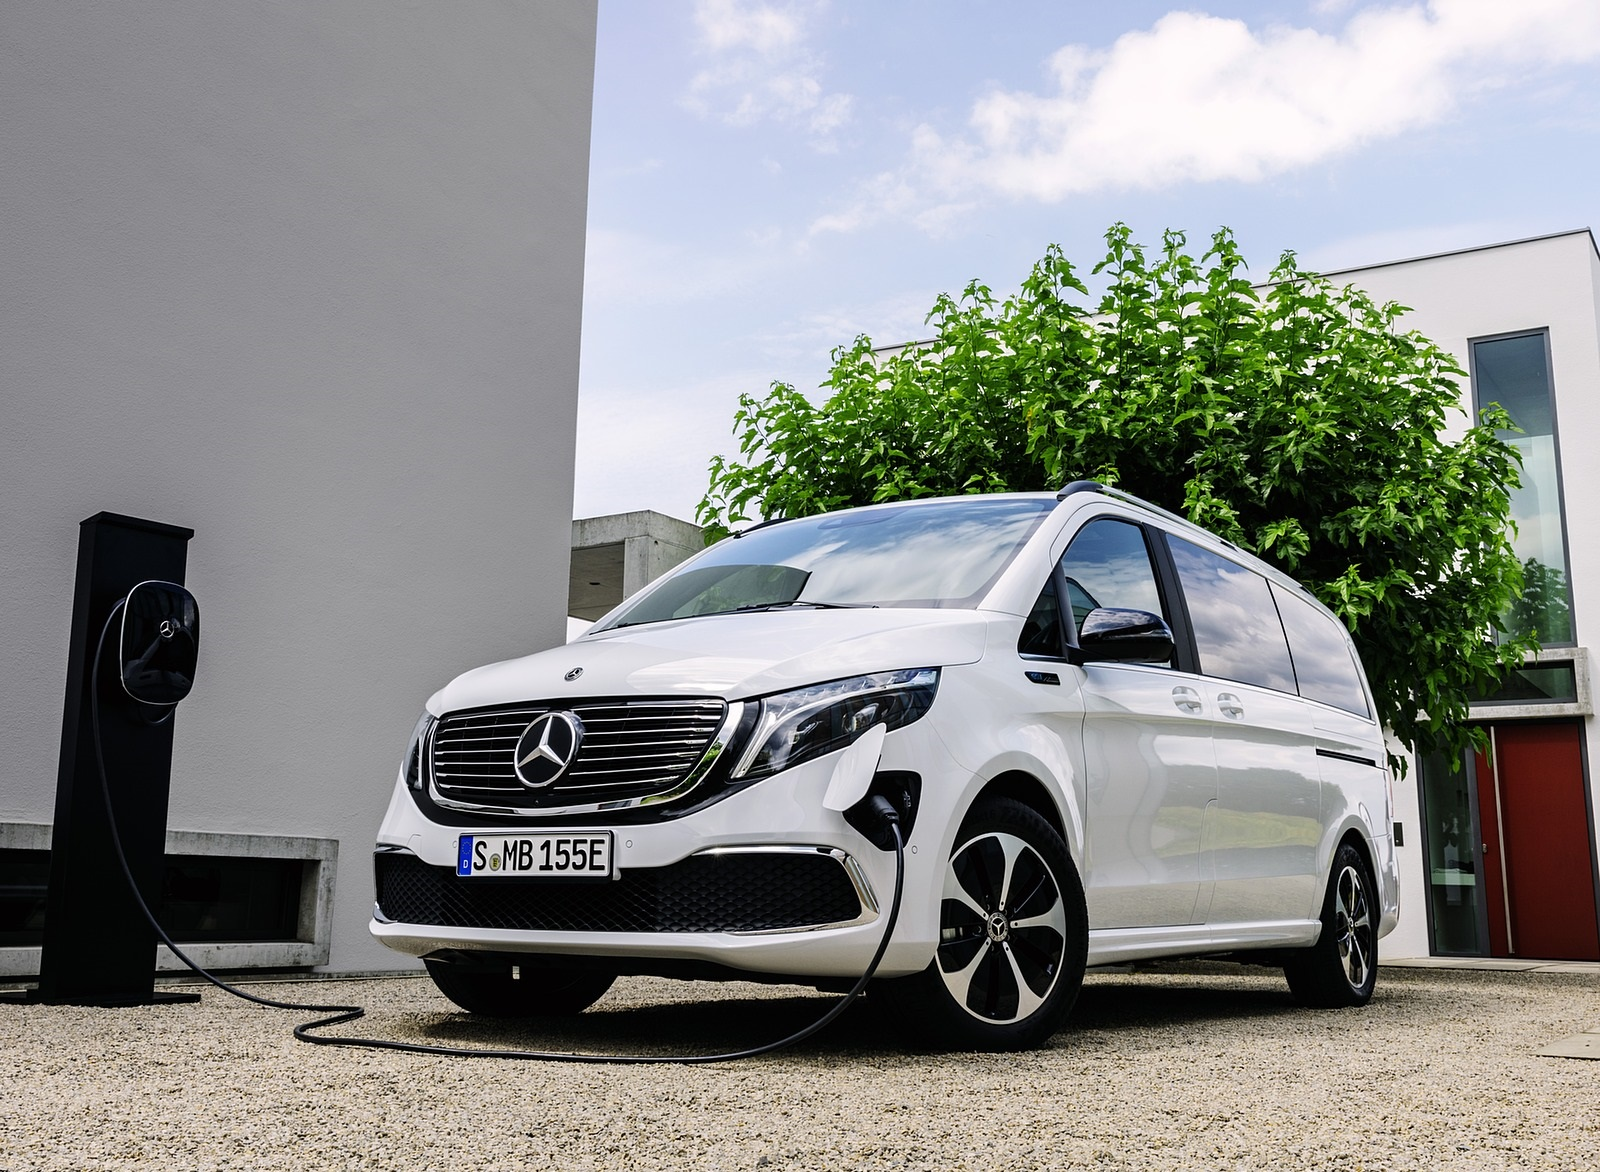 2020 Mercedes-Benz EQV 300 (Color: Mountain Crystal White Metallic) Front Three-Quarter Wallpapers (12)